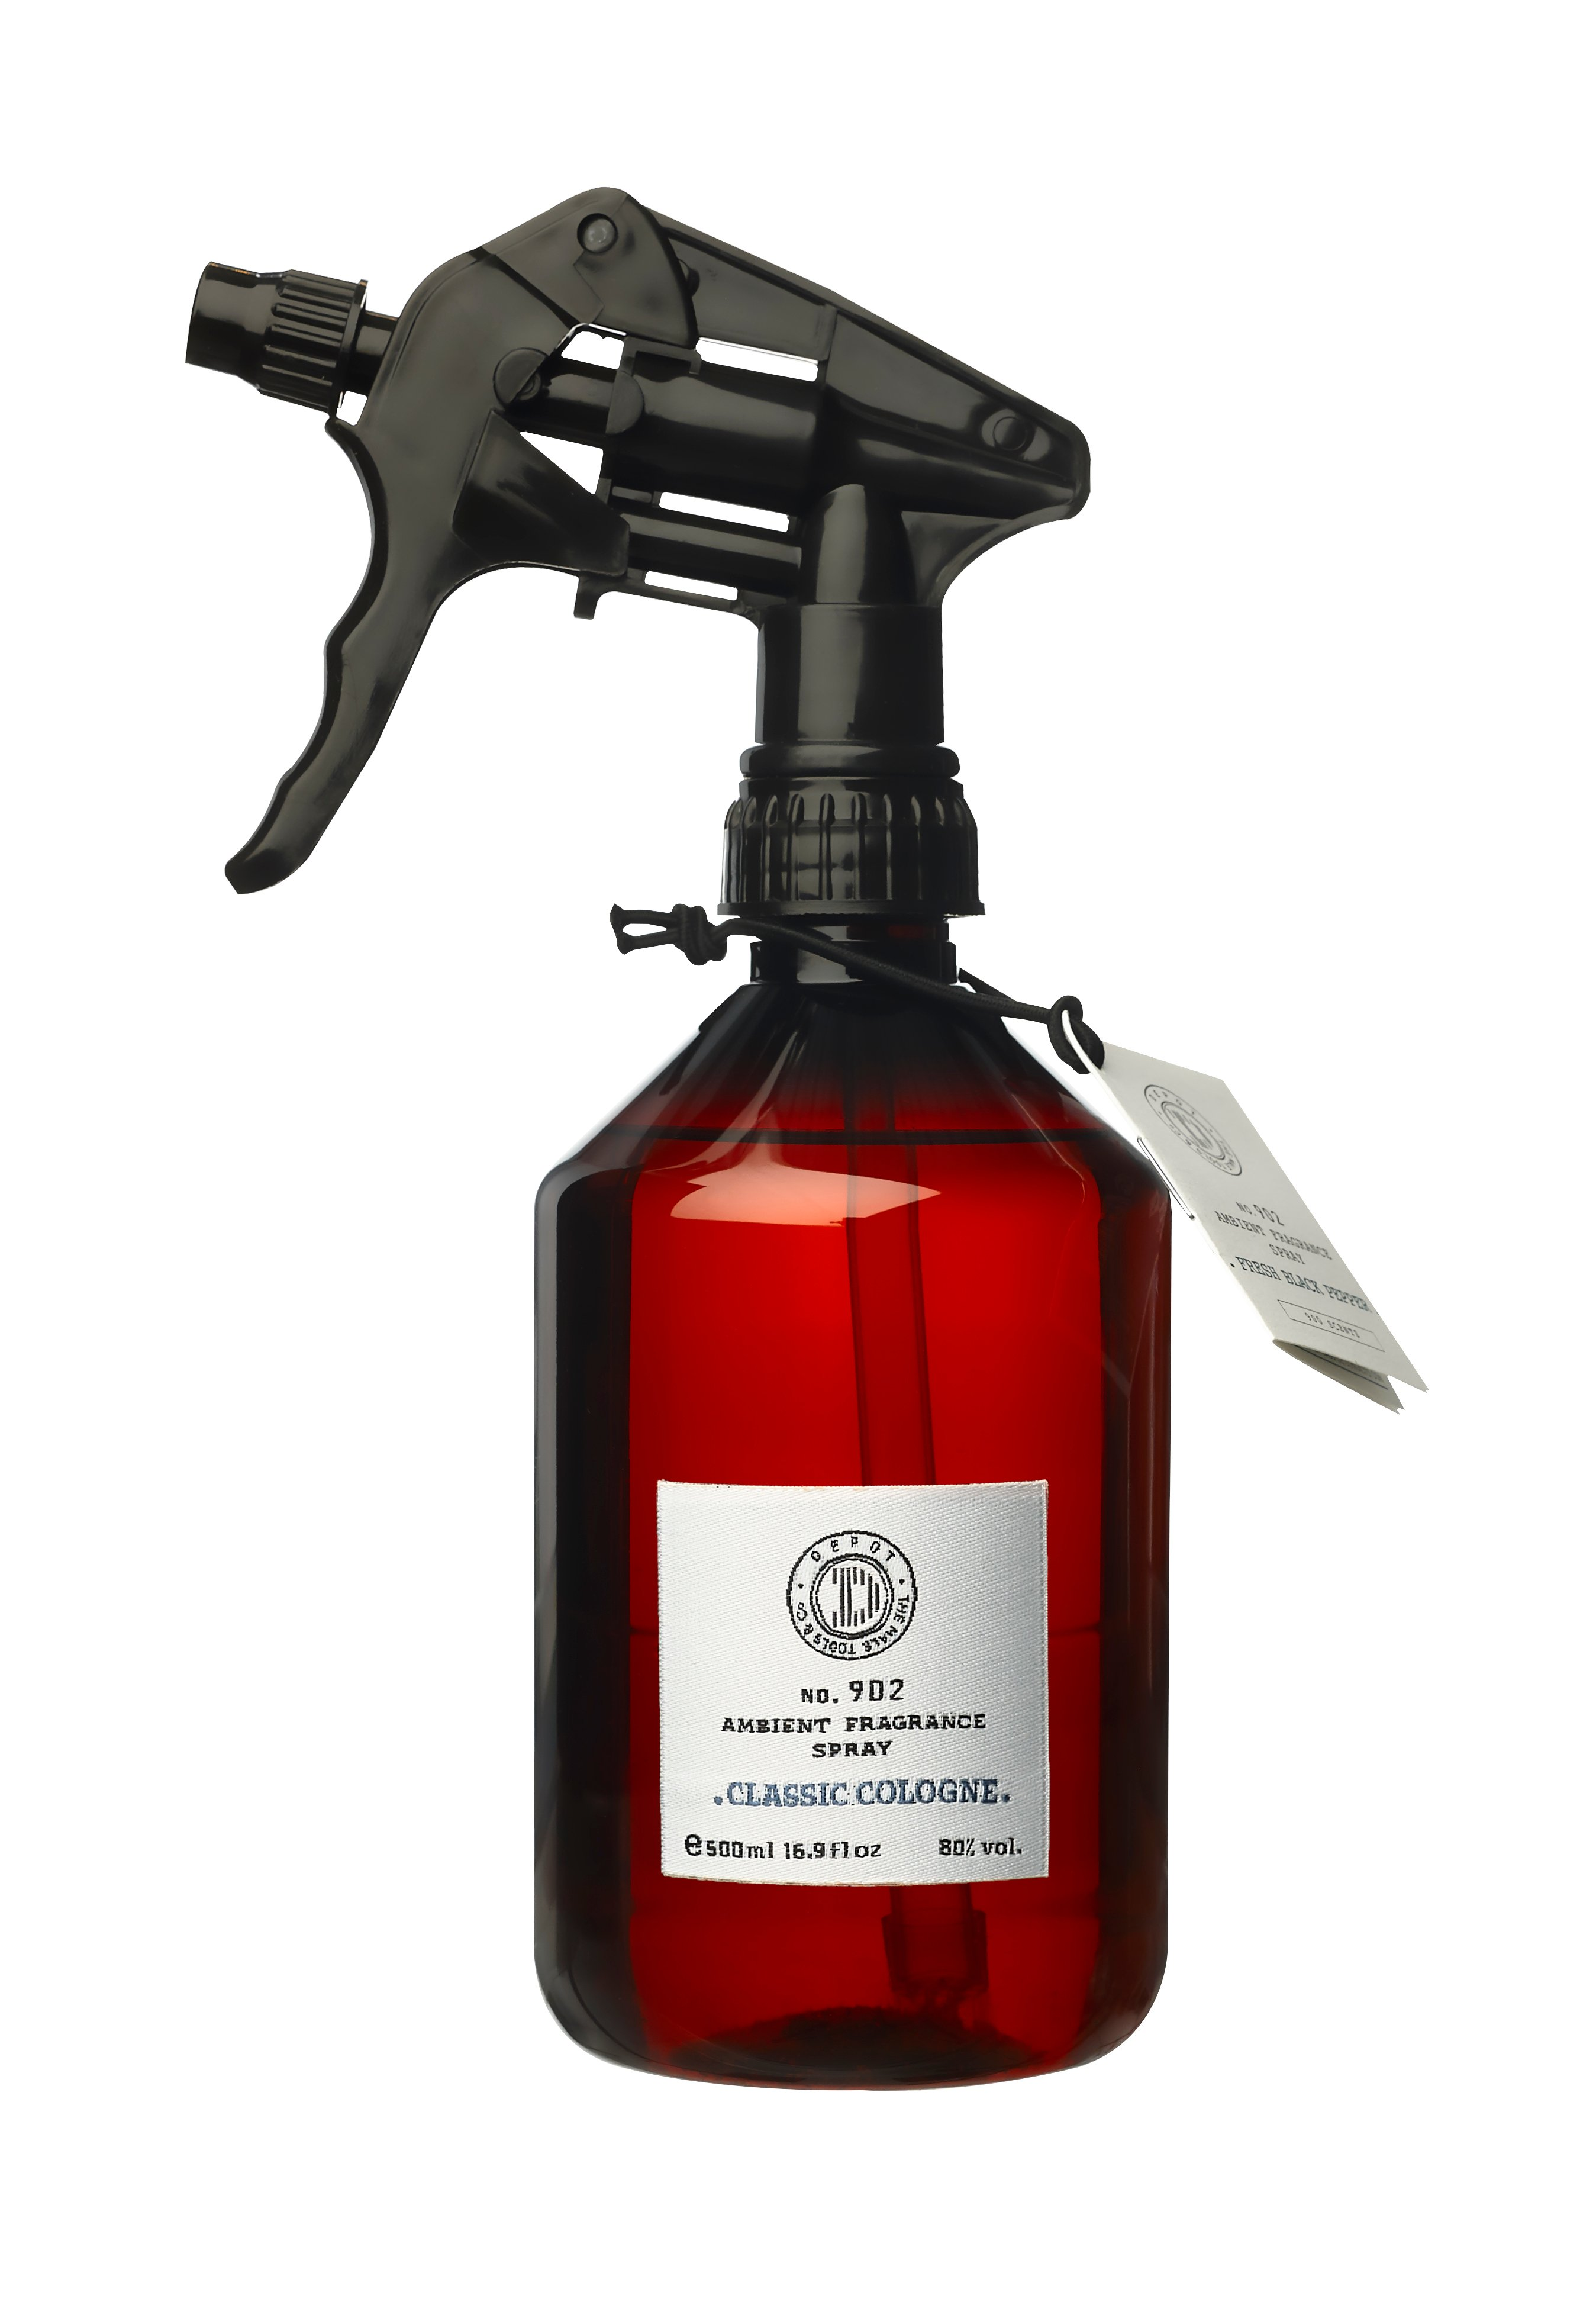 Depot - No. 902 Ambient Fragrance Spray - Classic Cologne